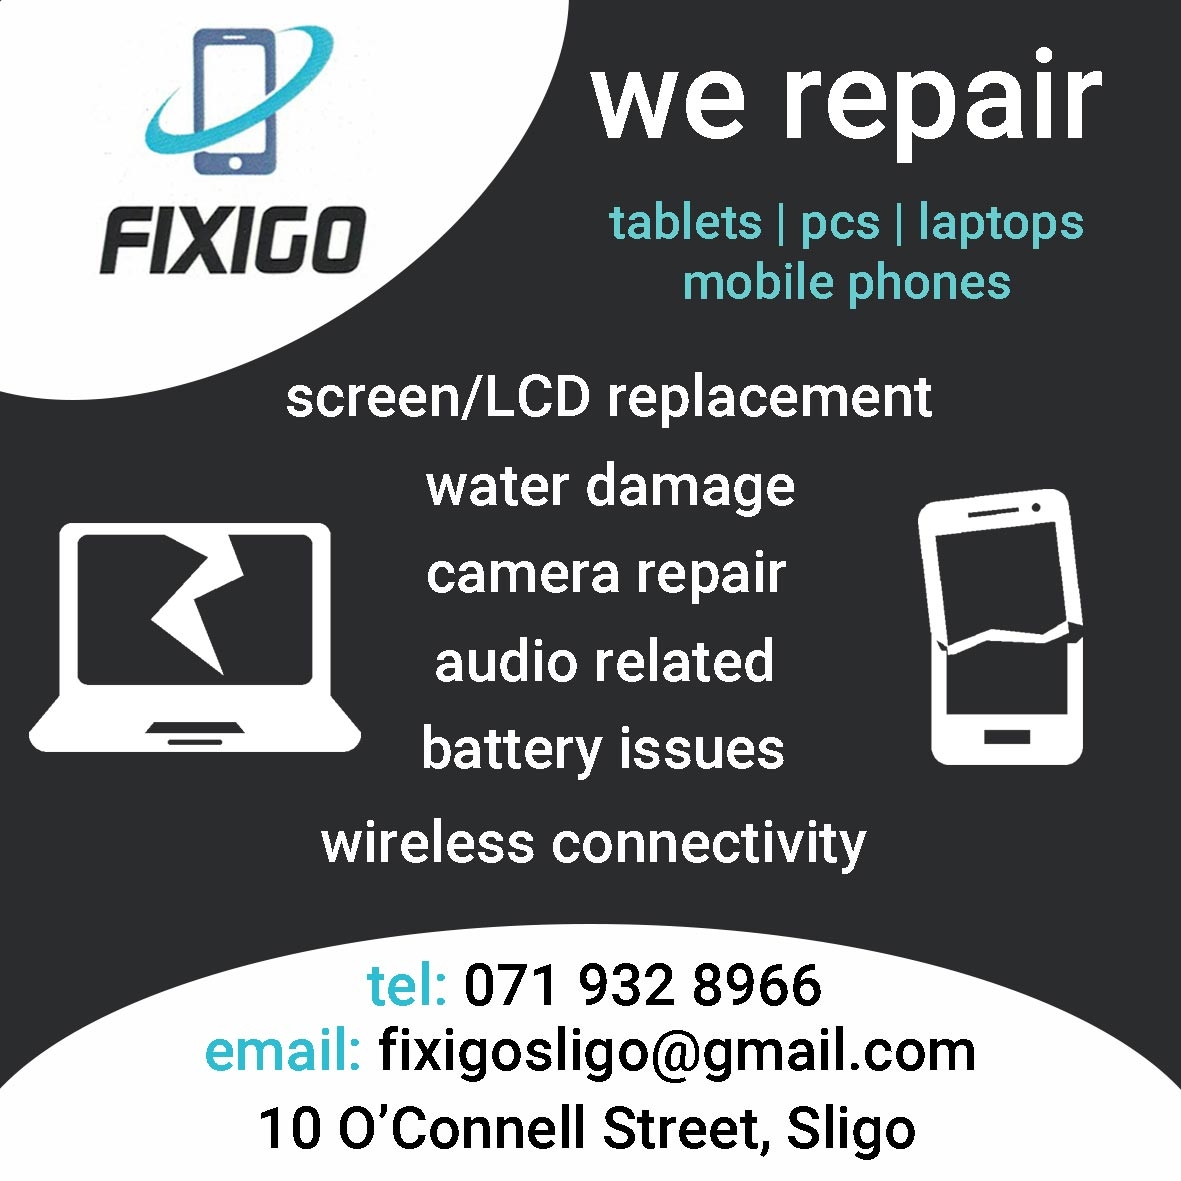 Fix a go Sligo